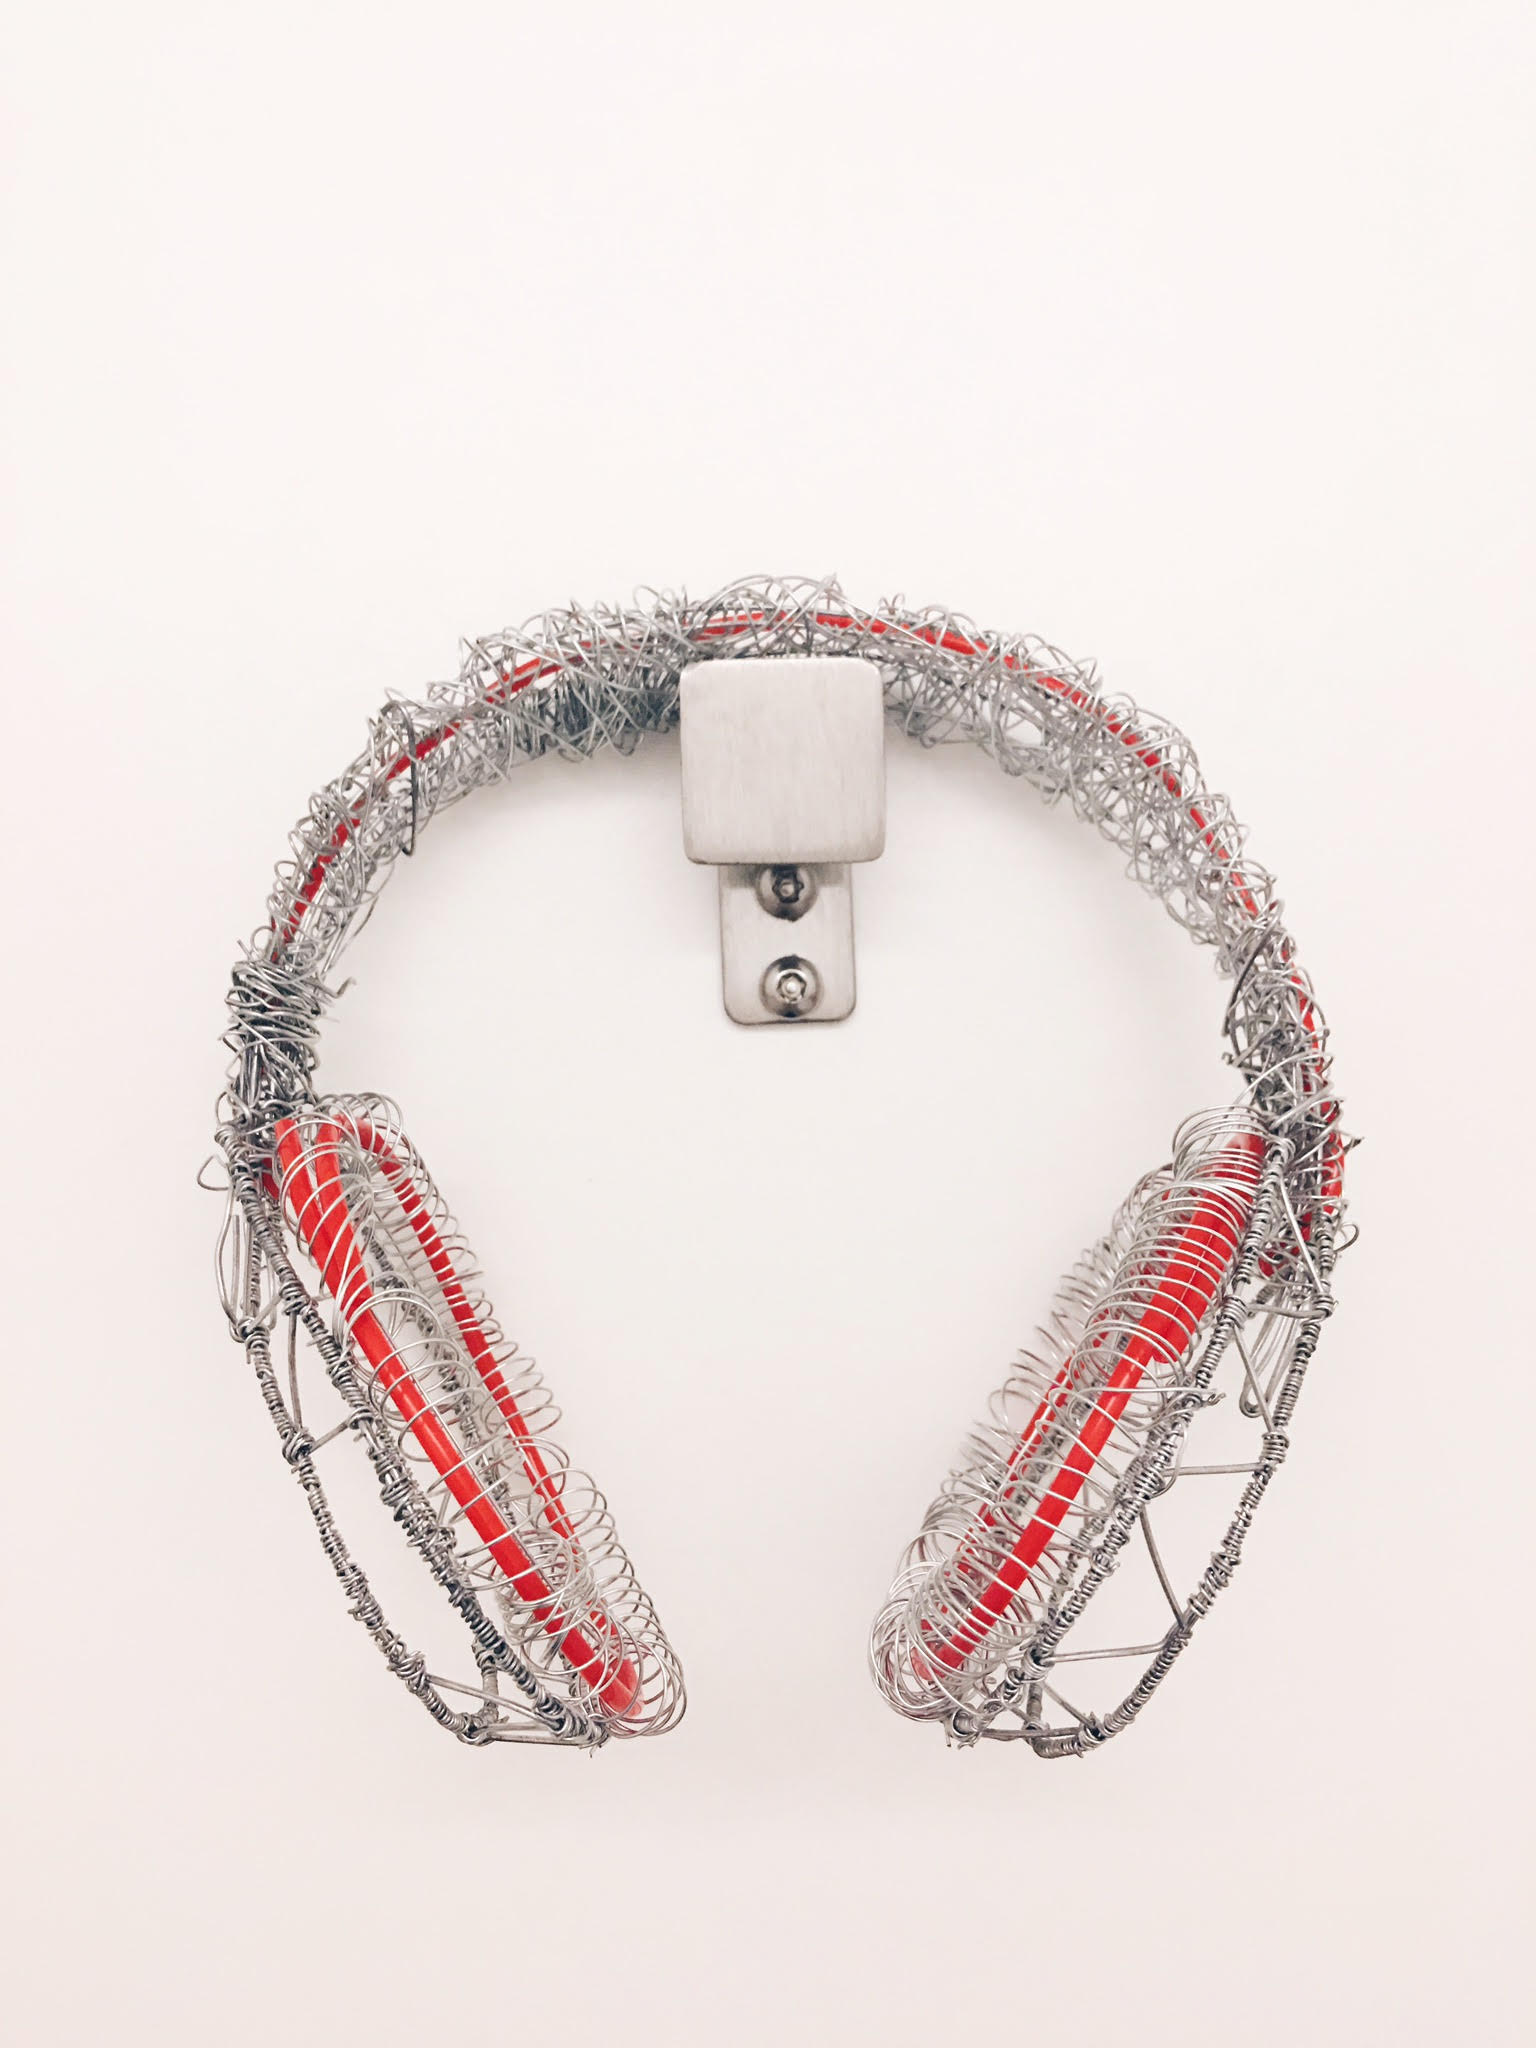 A pair of wire headphones. My first major project at Parsons for my Space and Materiality class, we had to sculpt the object we always carried with us.